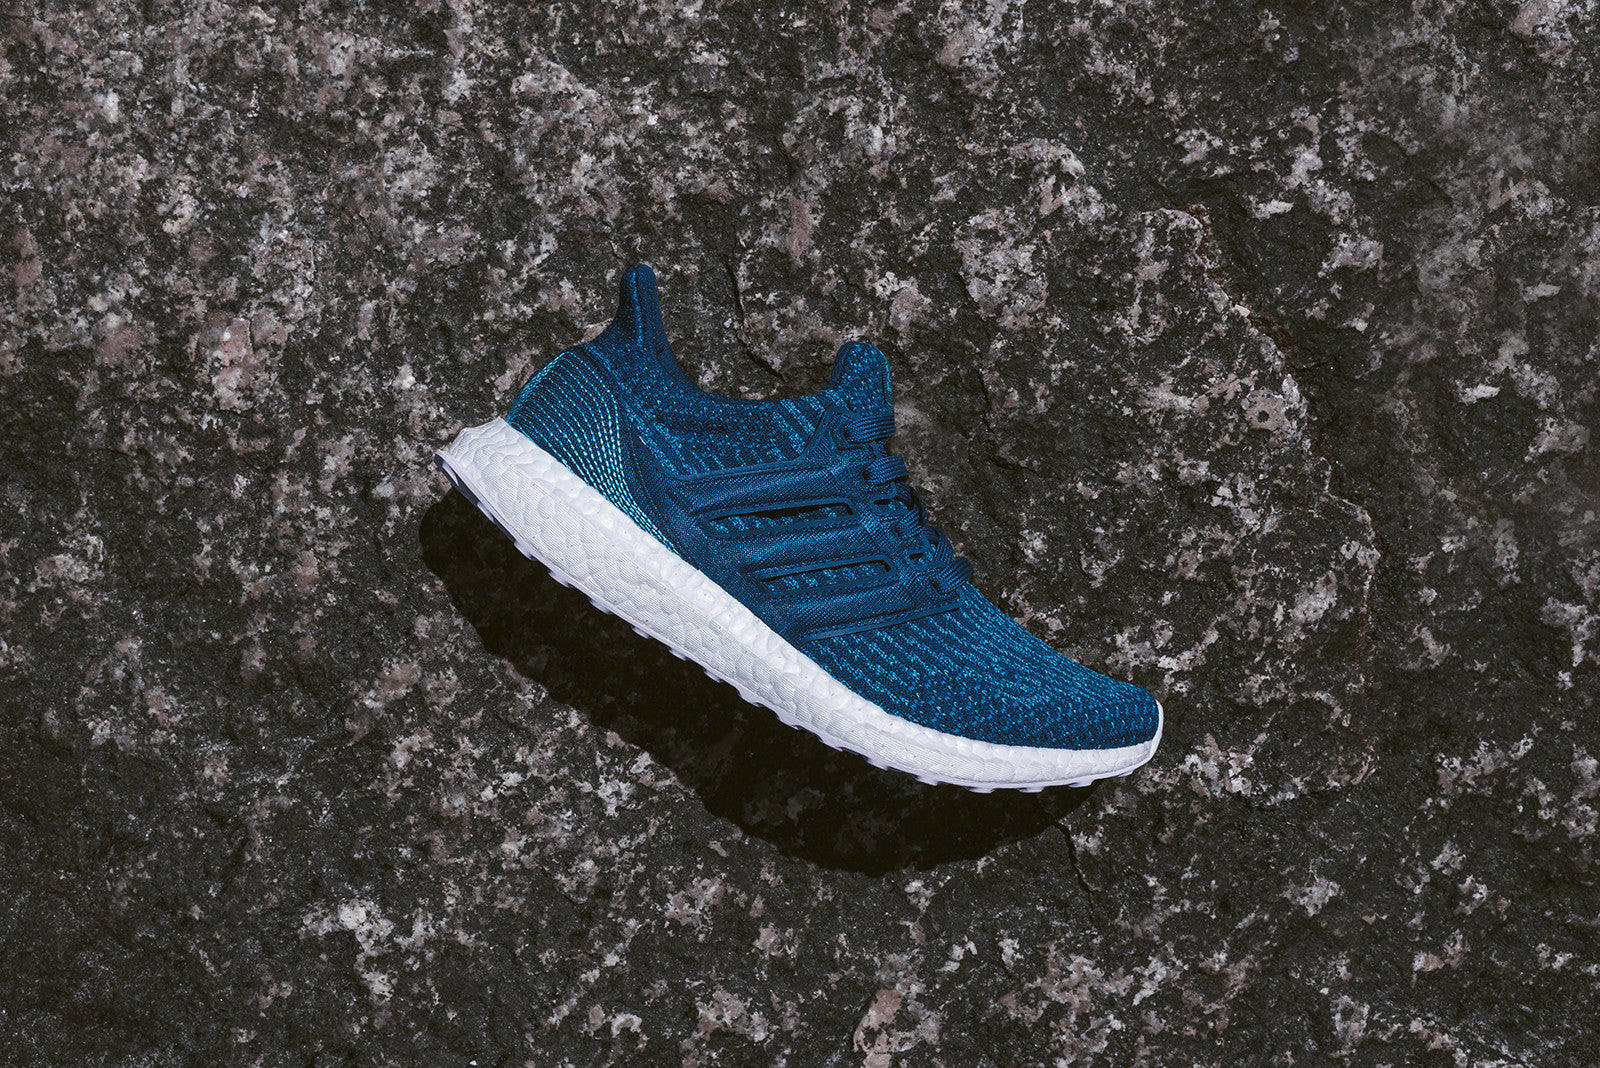 adidas x Parley UltraBoost - Night Navy / Intense Blue